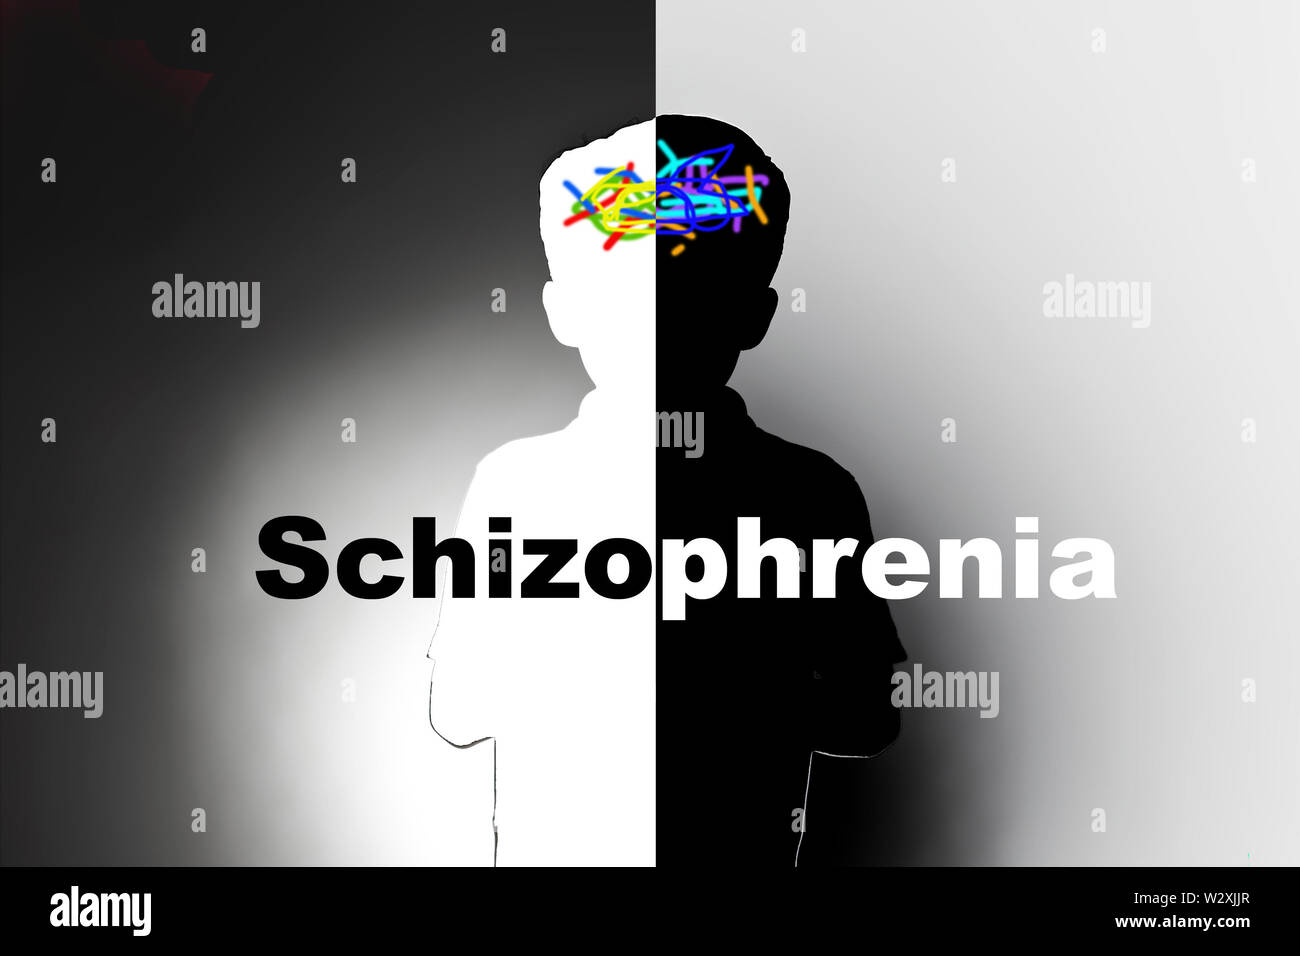 childhood mental health, schizophrenia Stock Photo